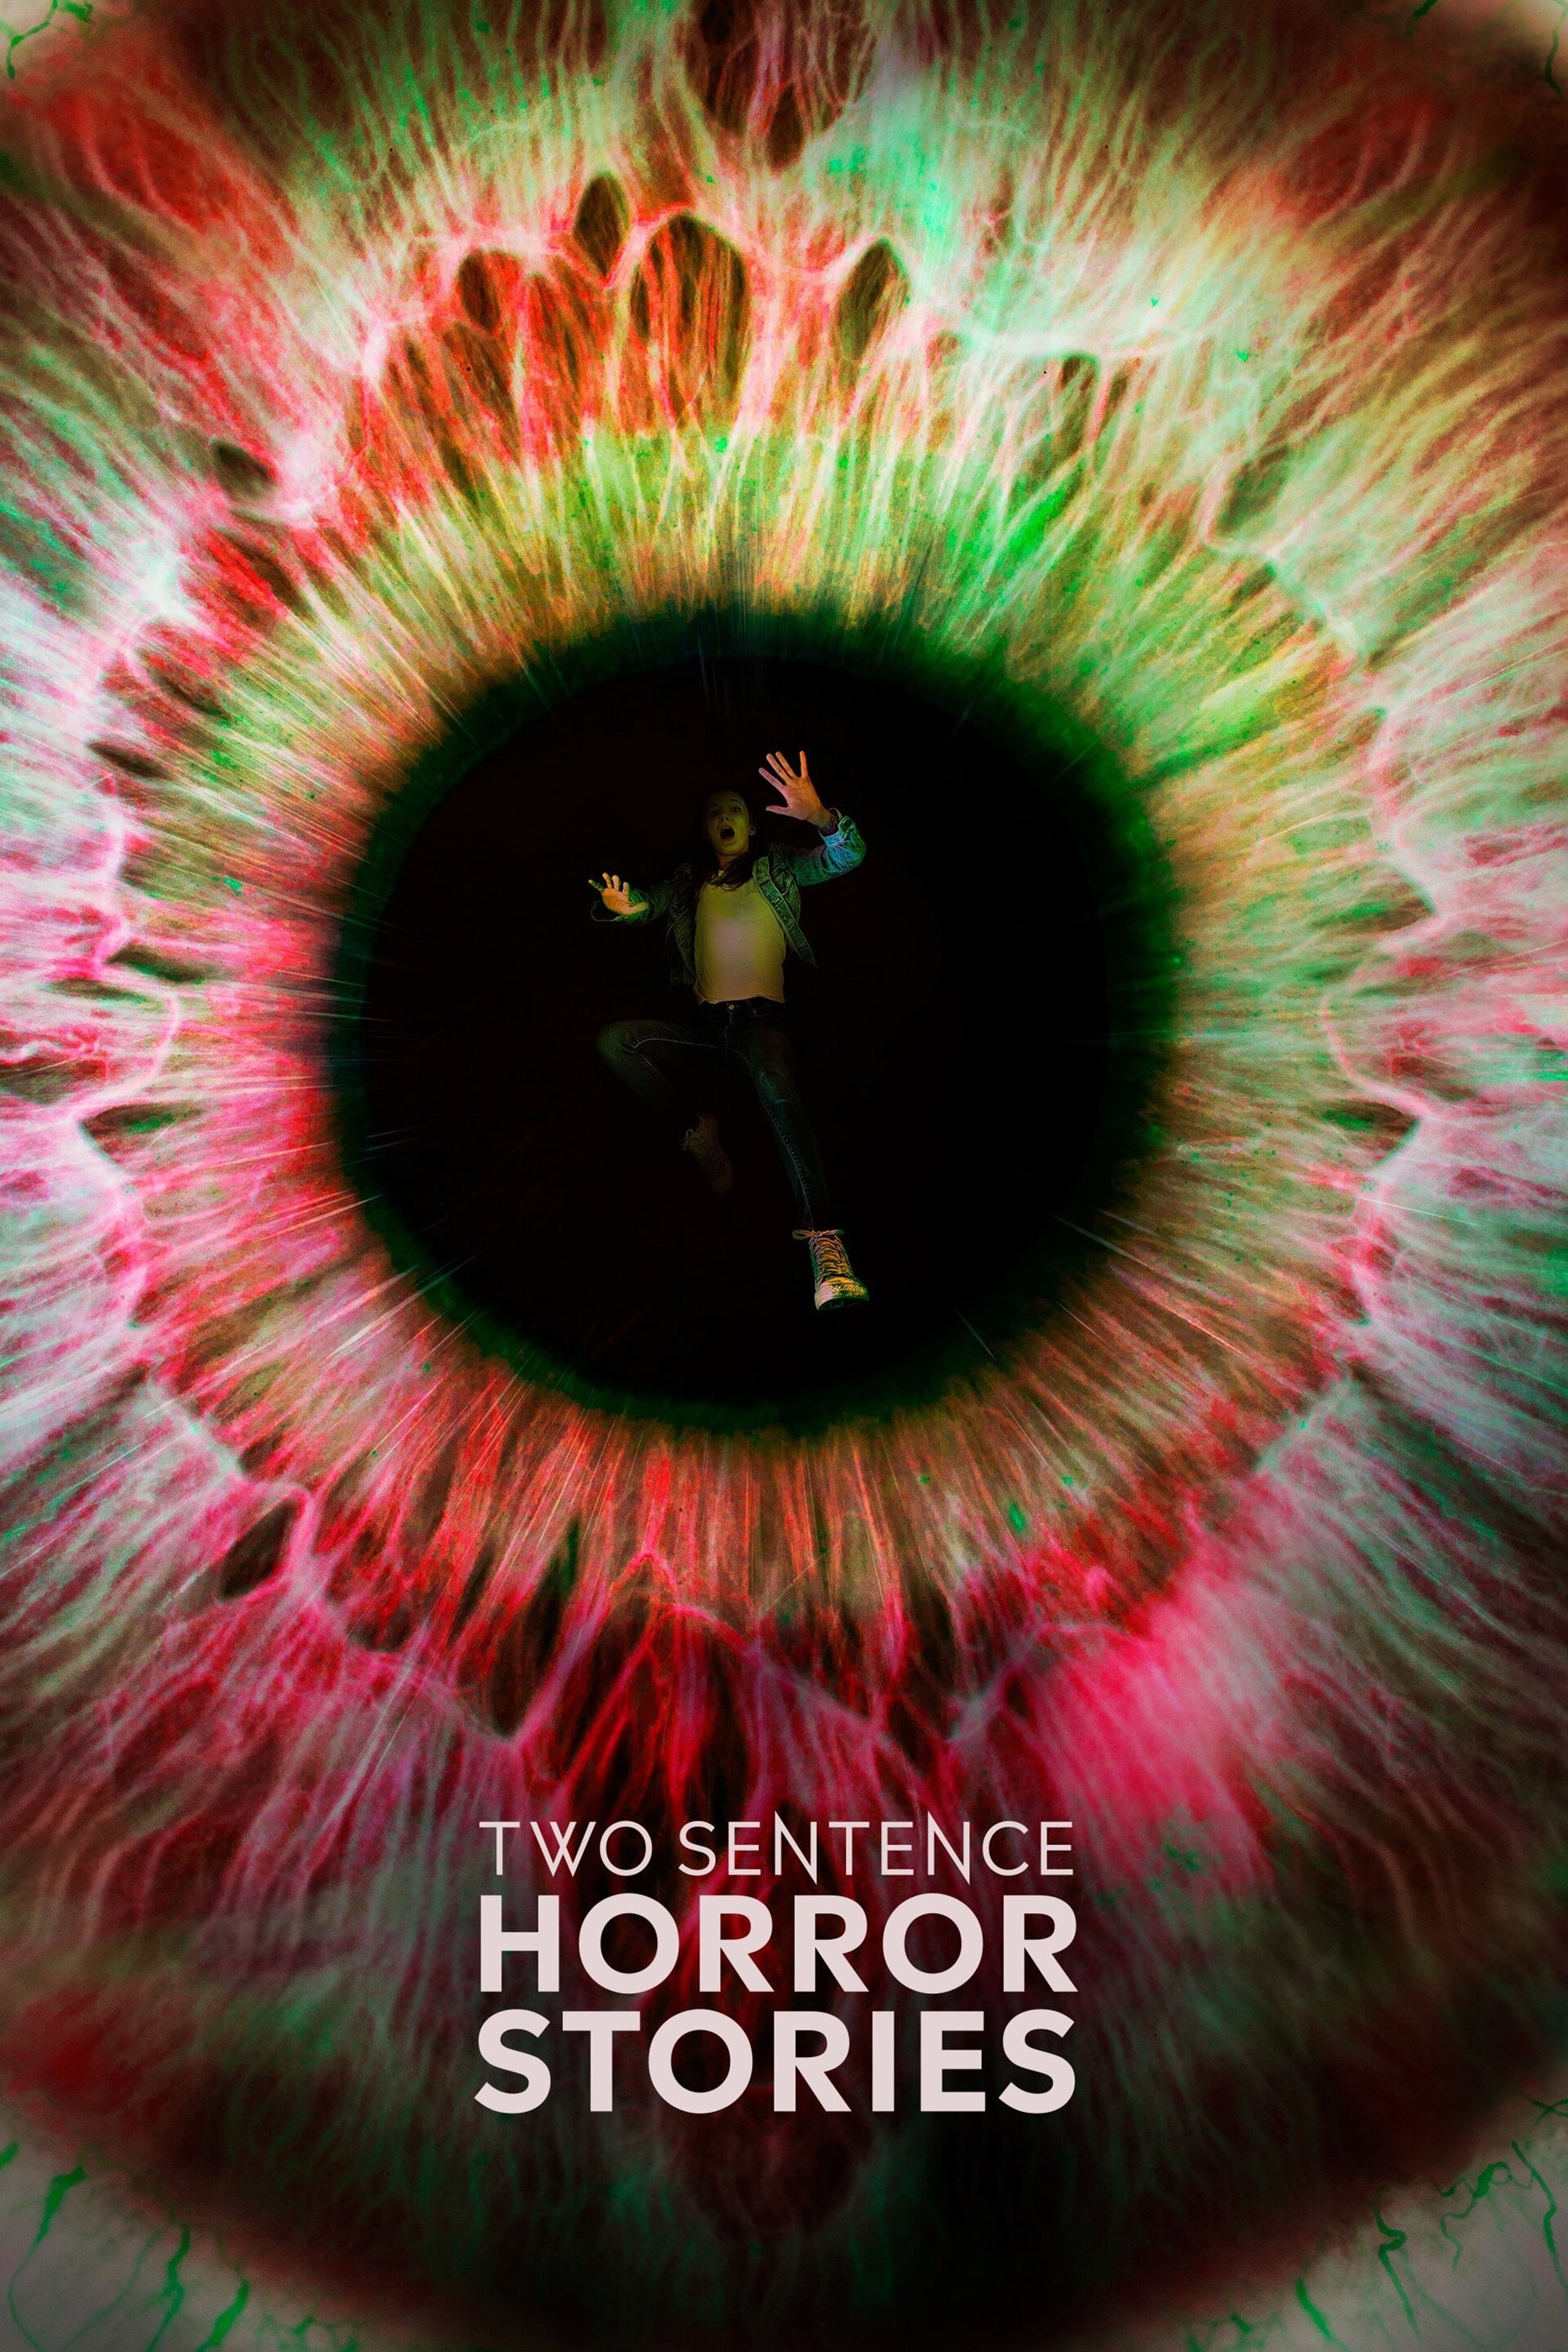 Two Sentence Horror Stories TV Shows About Horror Anthology